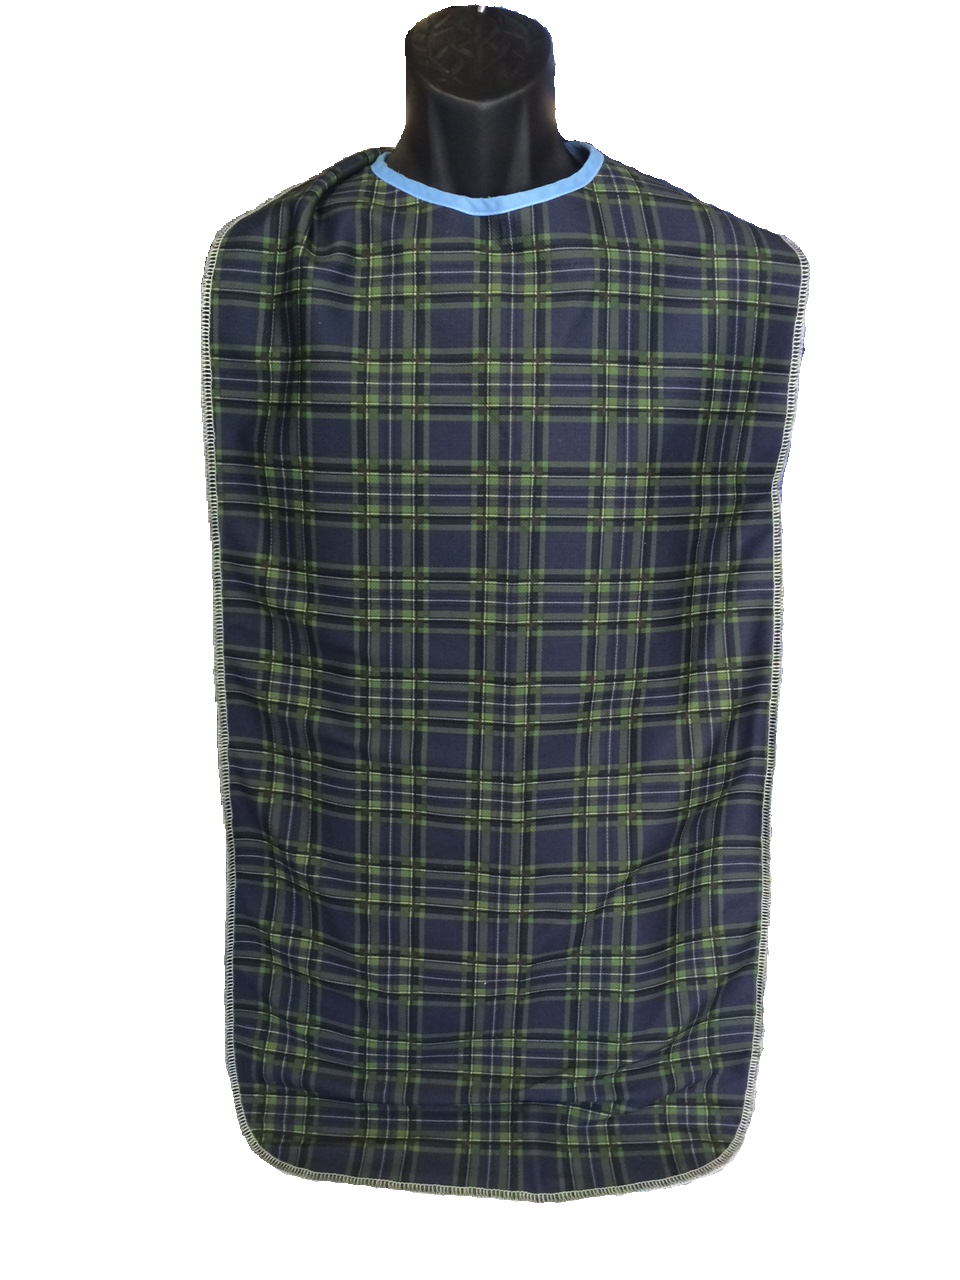 Adult Clothing Protector - 18x42 Rabbit Ear - Navy/Green Plaid